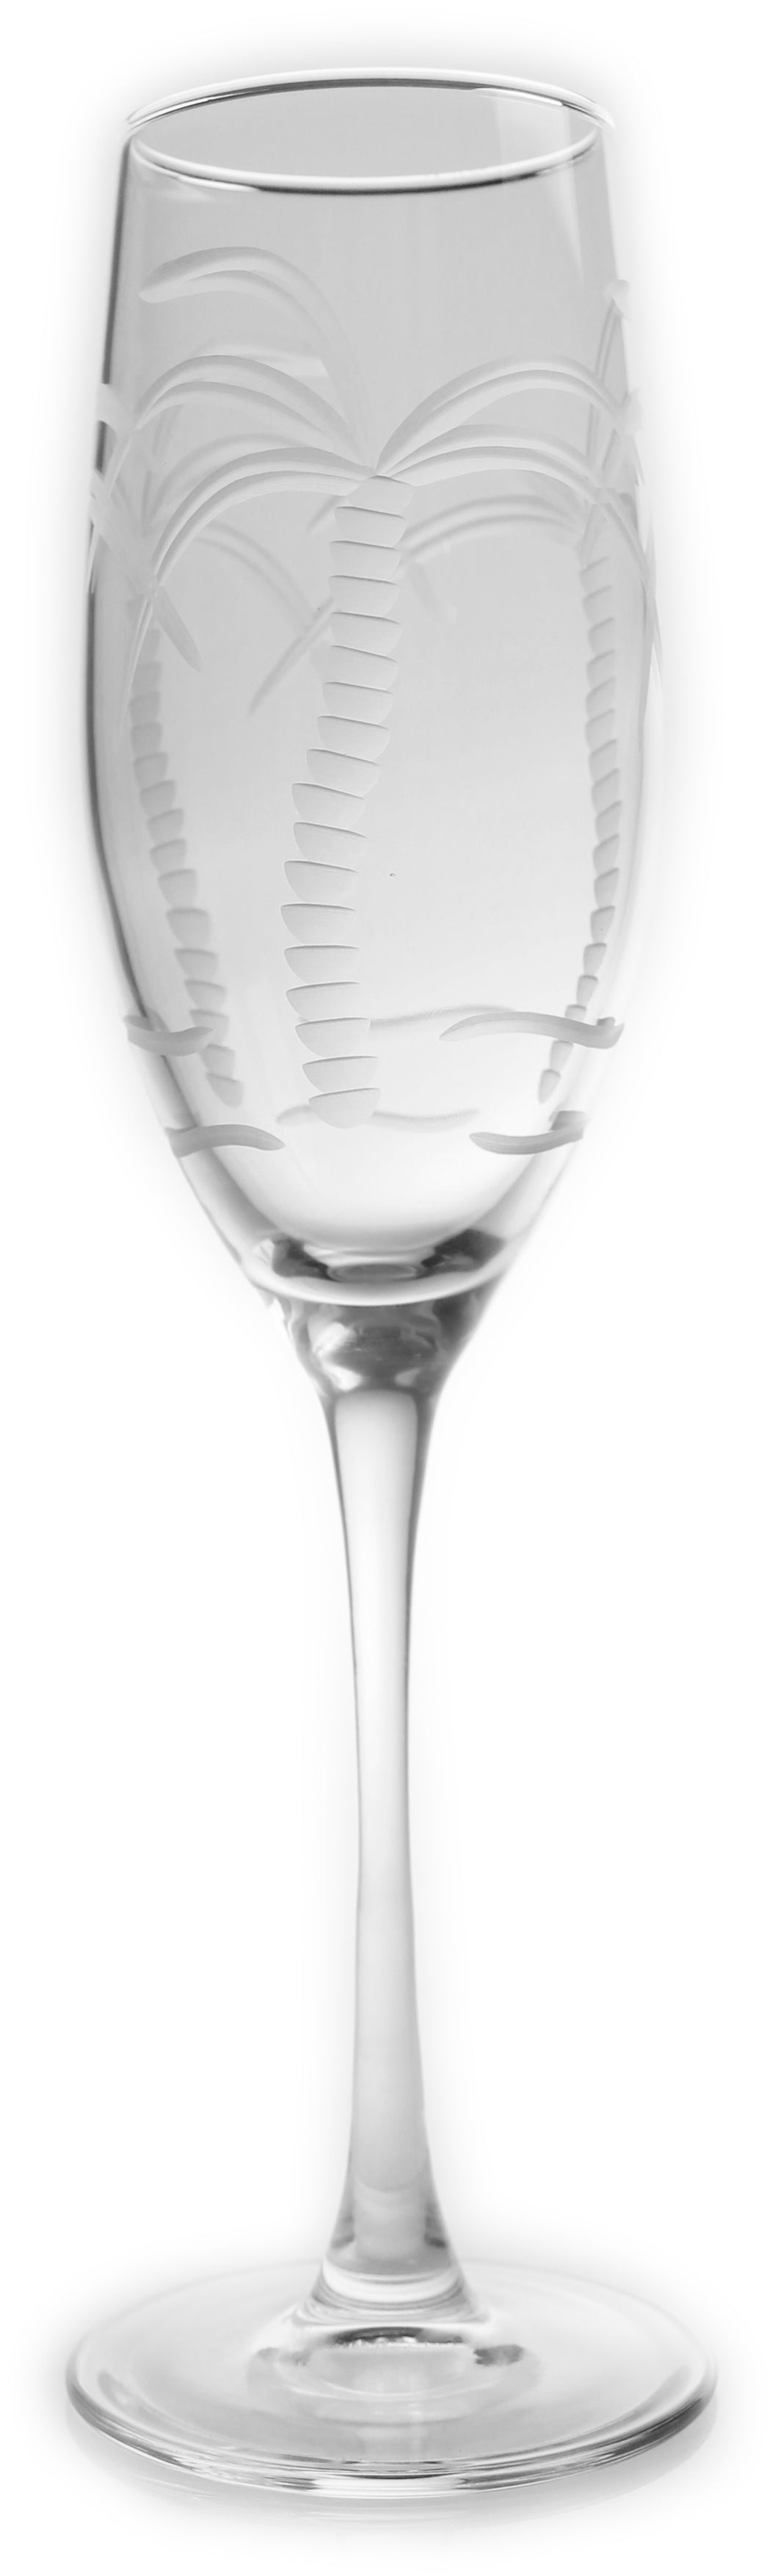 Palm Tree 8oz Champagne Flutes-Set of 4 - MaisonBeach